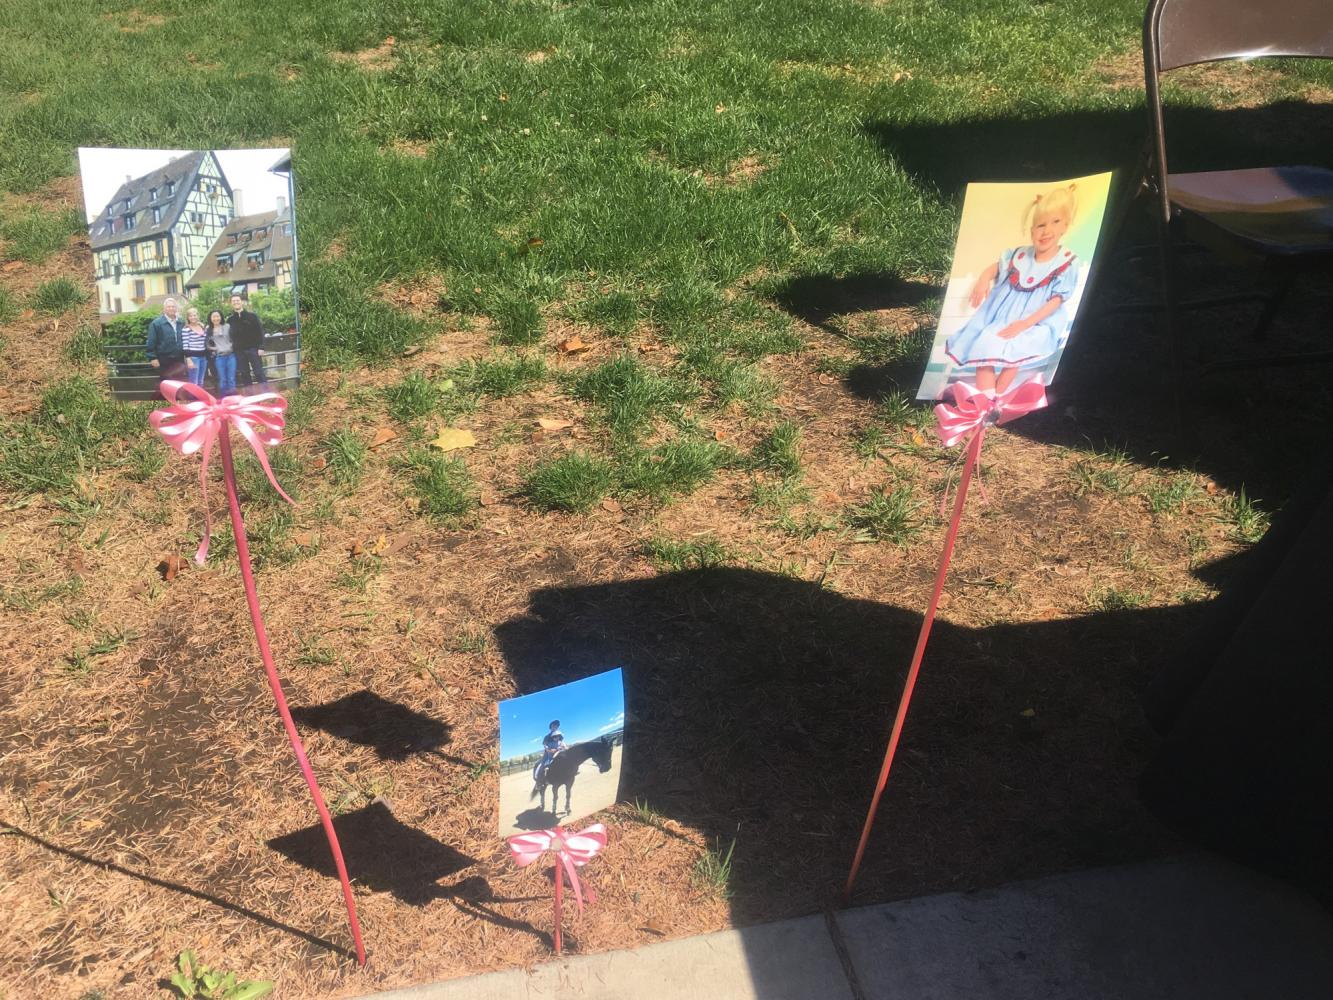 The life of Kristina Chesterman was spotlighted at the event. Photo credit: Natalie Hanson